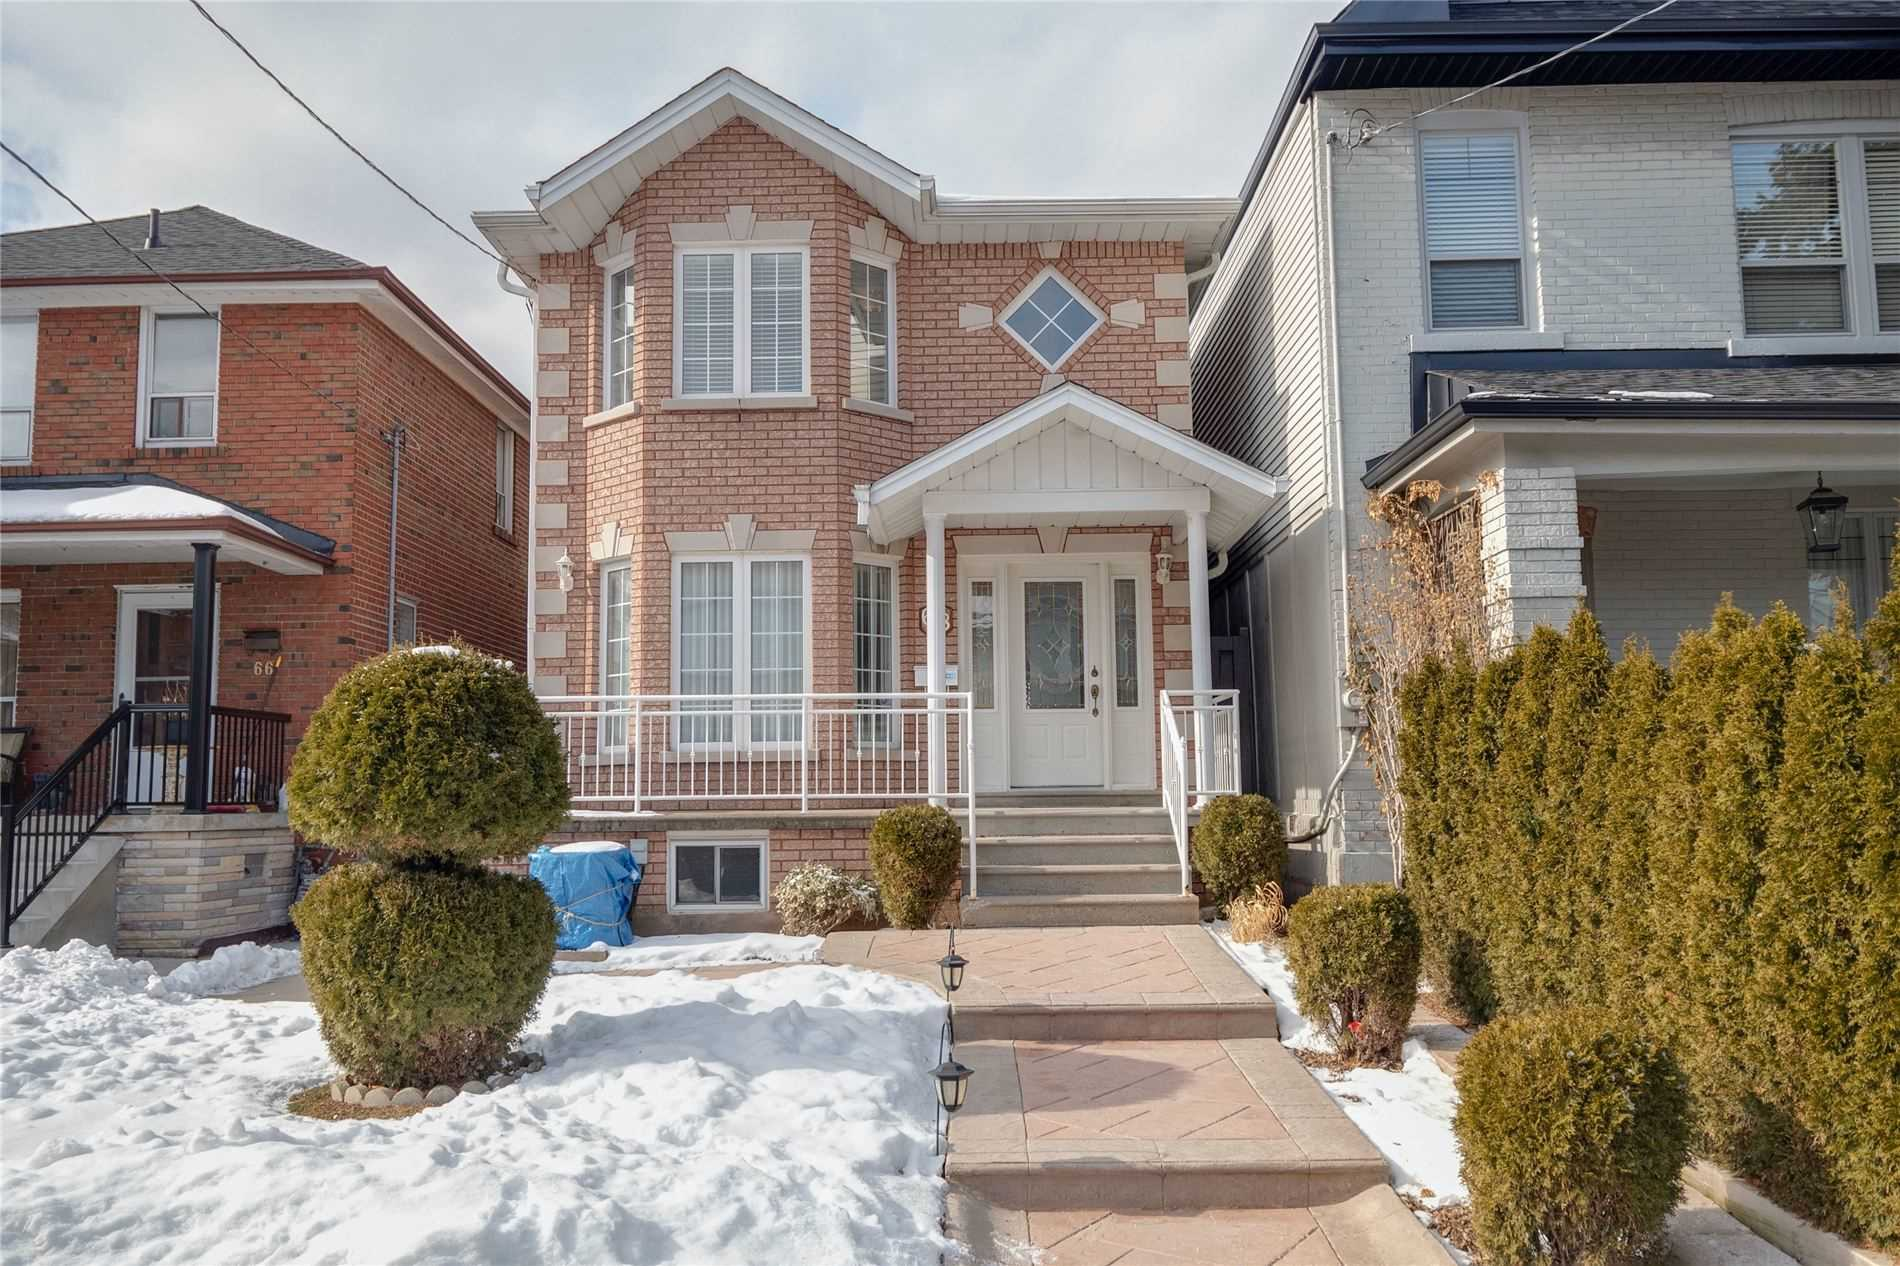 For Sale: 68 Sellers Avenue, Toronto, ON | 3 Bed, 4 Bath House for $1365000.00. See 23 photos!